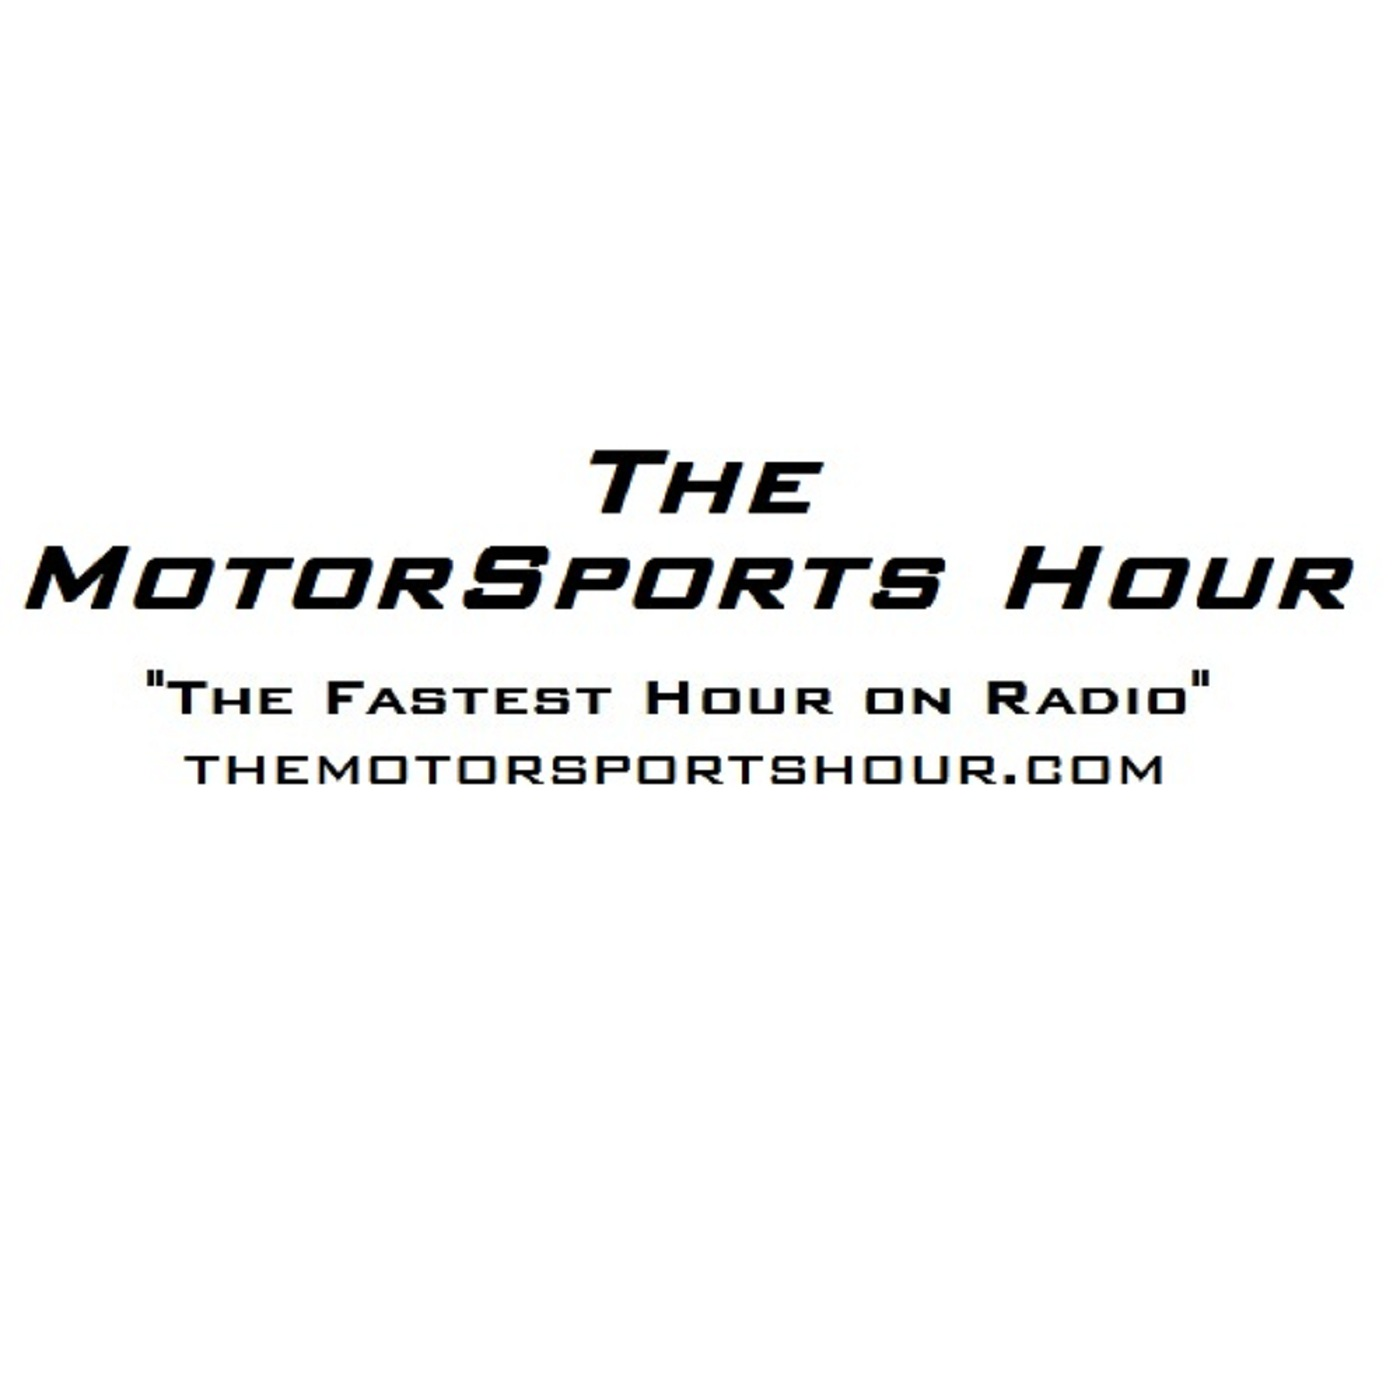 The MotorSports Hour